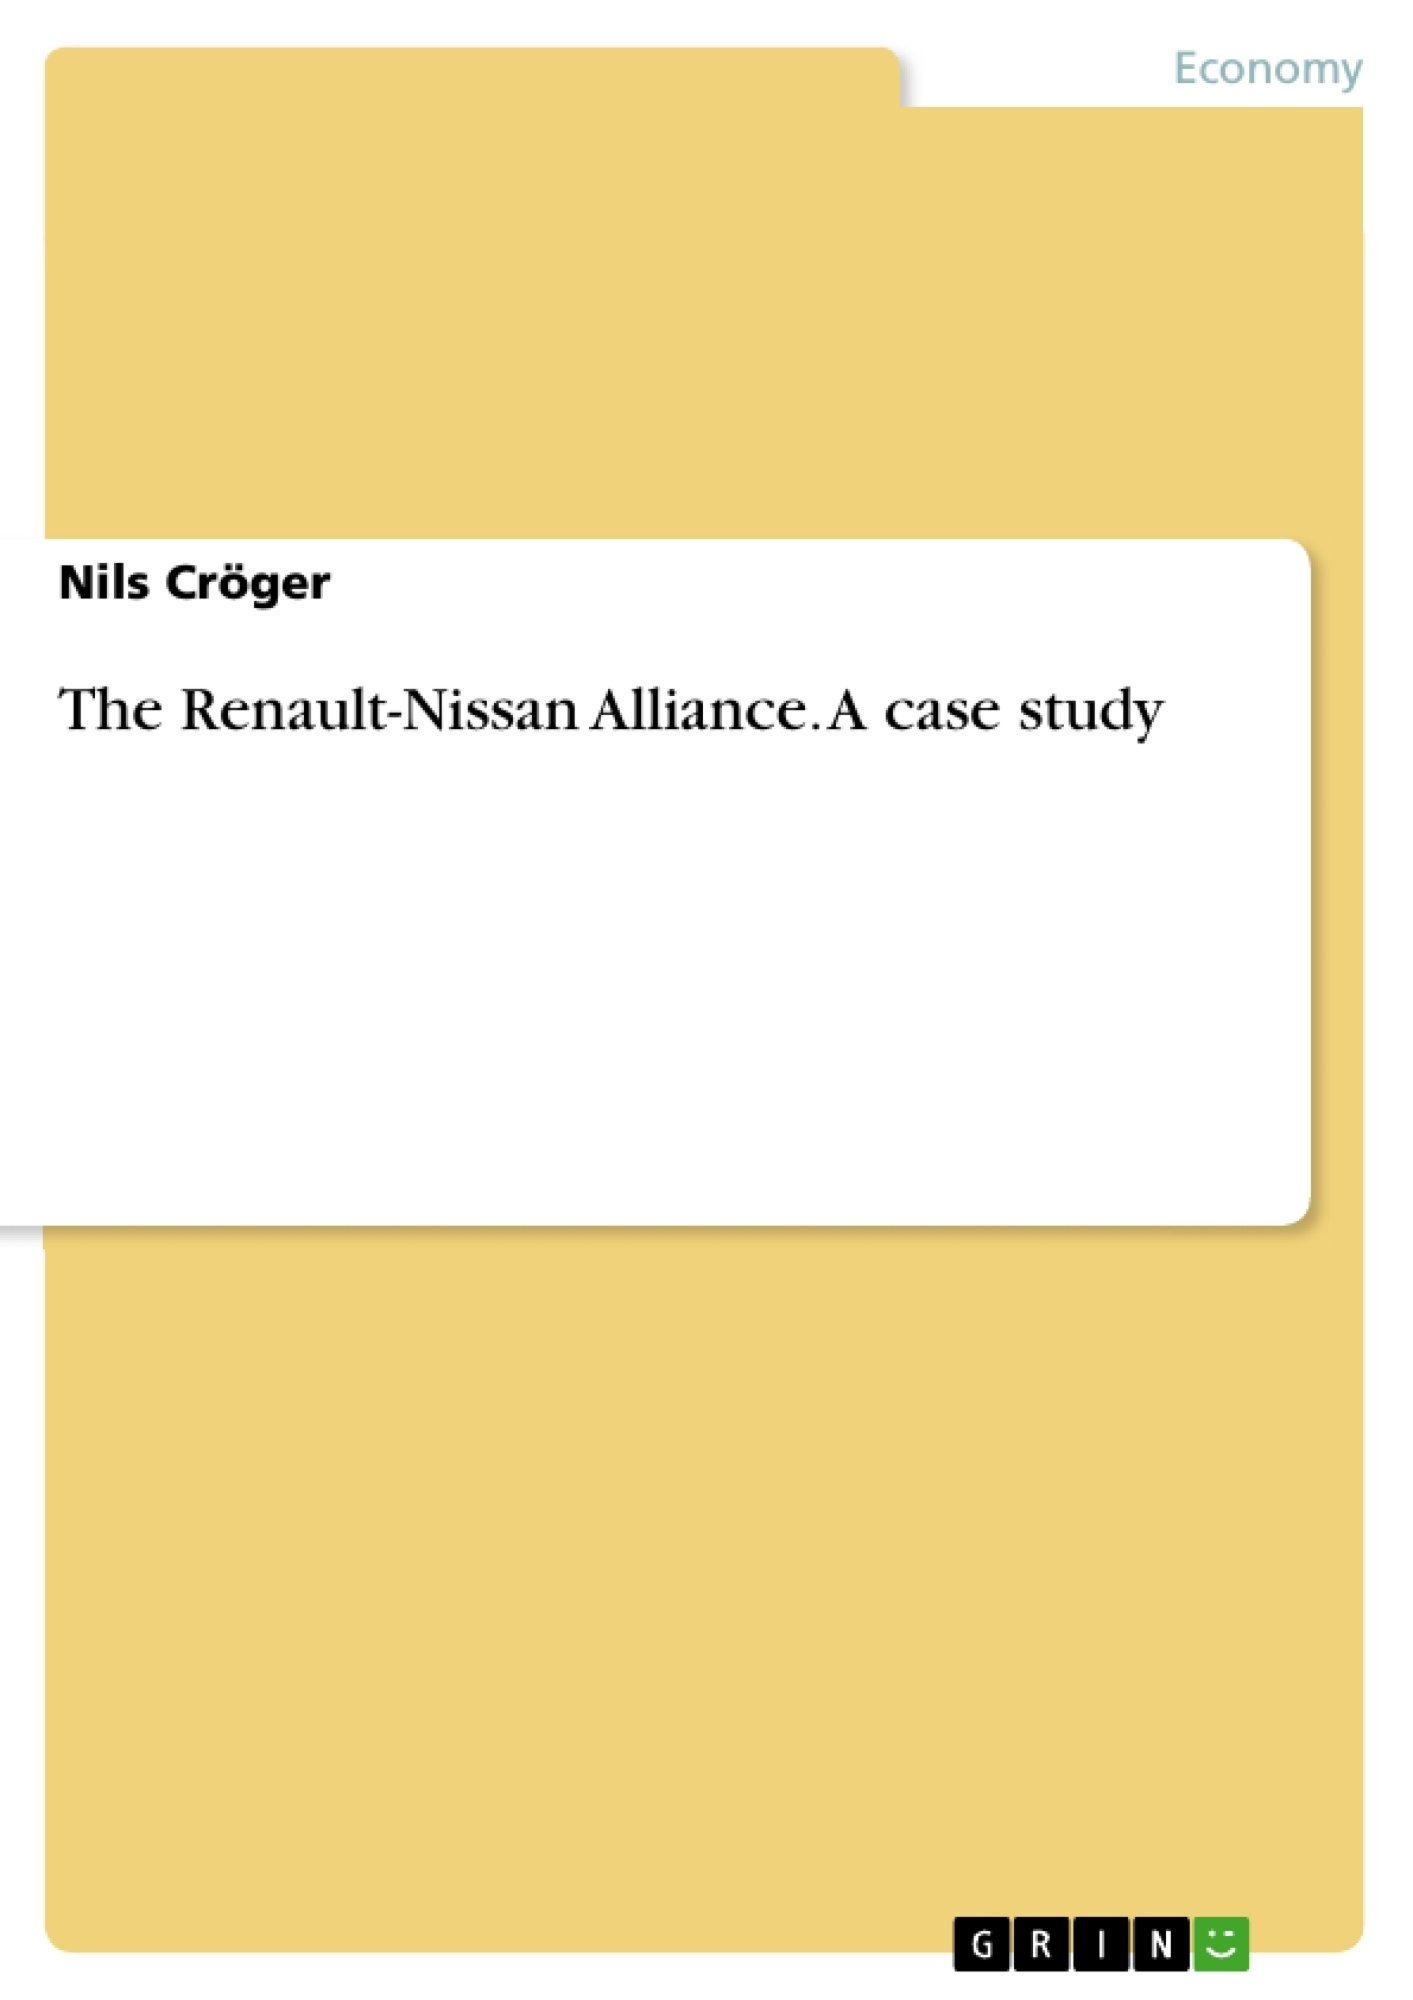 The Renault Nissan Alliance A case study